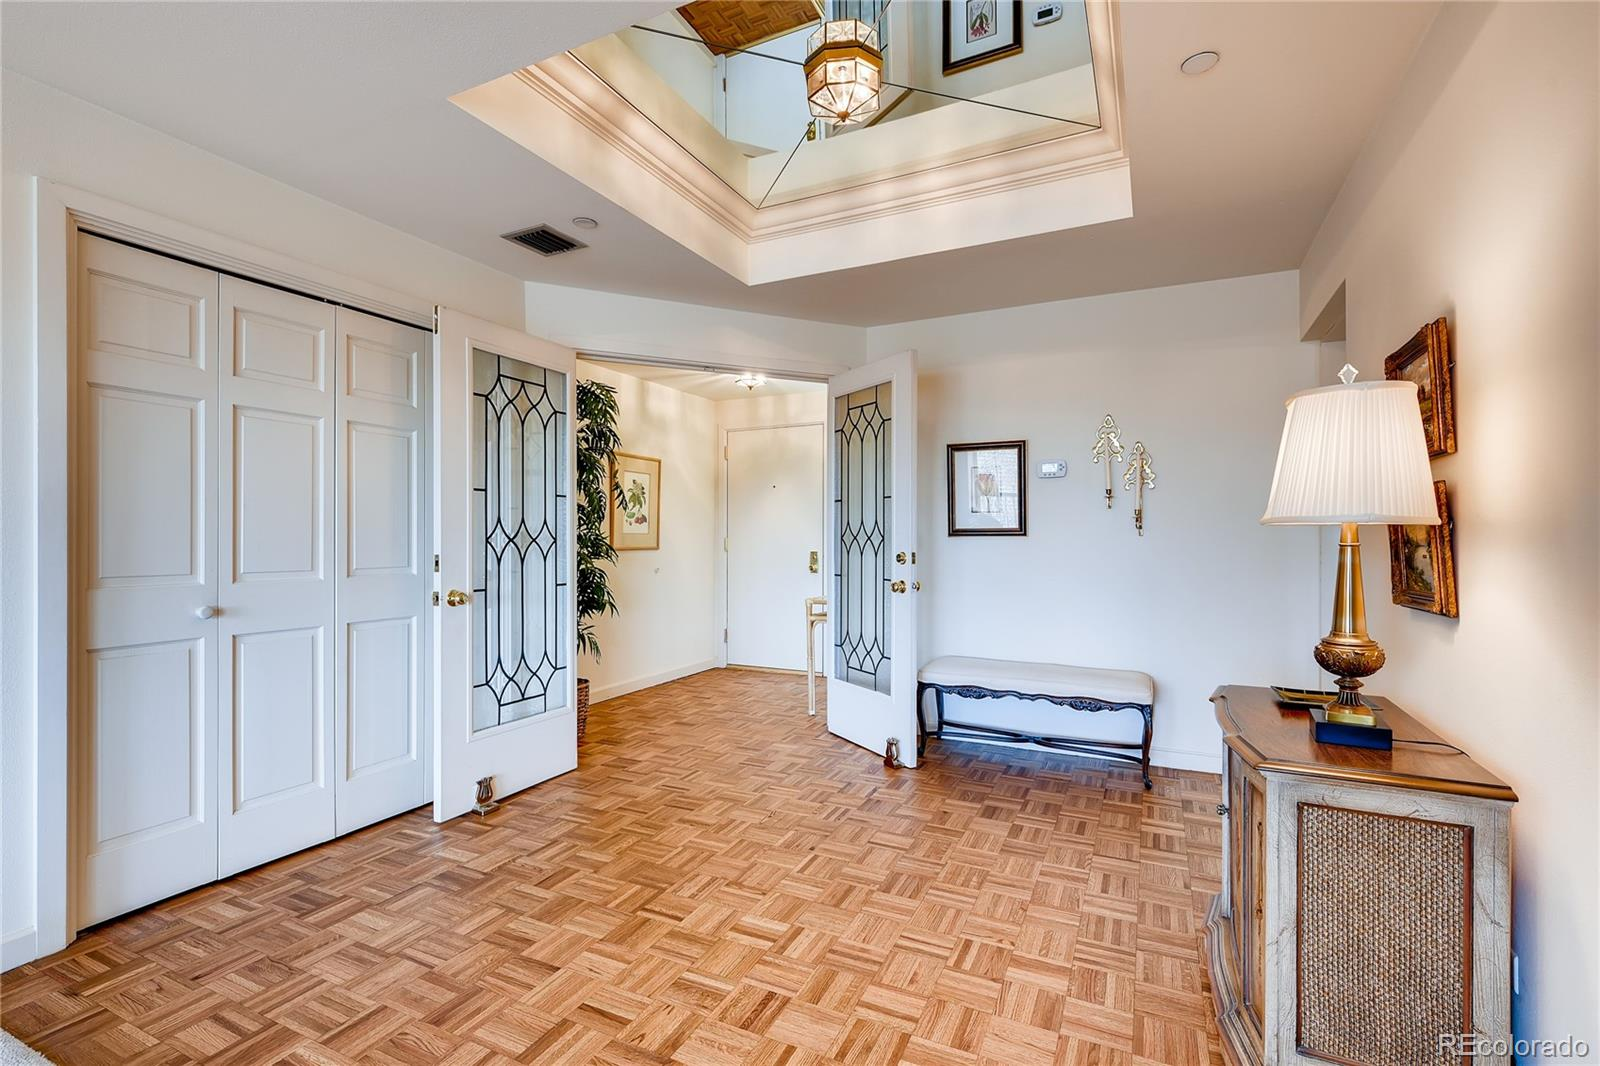 Elegant south facing unit of 2390 square feet with floor to ceiling windows overlooking acres of manicured landscaping, ponds, waterfalls, trees and stunning mountain views.  Lovely parquet wood floors, plantation shutters, crown molding, coffered ceilings, wet bar and spacious rooms. Gracious living and beautiful appointments.  Impressive entry with Deco French doors into Great Room and dining area.  All appliances included in kitchen with upgraded lighting and large eating nook. The two bedrooms and full baths could be dual masters or an office/den. Nice storage in  Laundry room equipped with full sized washer/dryer.  There are two deeded parking spaces and large storage unit. Fitness Center with indoor/outdoor pool, hot tub, steam rooms, racquetball courts, picnic area with grill and party room with kitchenette. Grand Salon with peaceful north facing large brick patio and guest suites also available.  Waterford is a great living experience with 24/7 manned front door.  Three elevators.  Cherry Creek schools.  Pet free building.  Underground garage is heated and well-lit.  Live like being on a vacation every day.